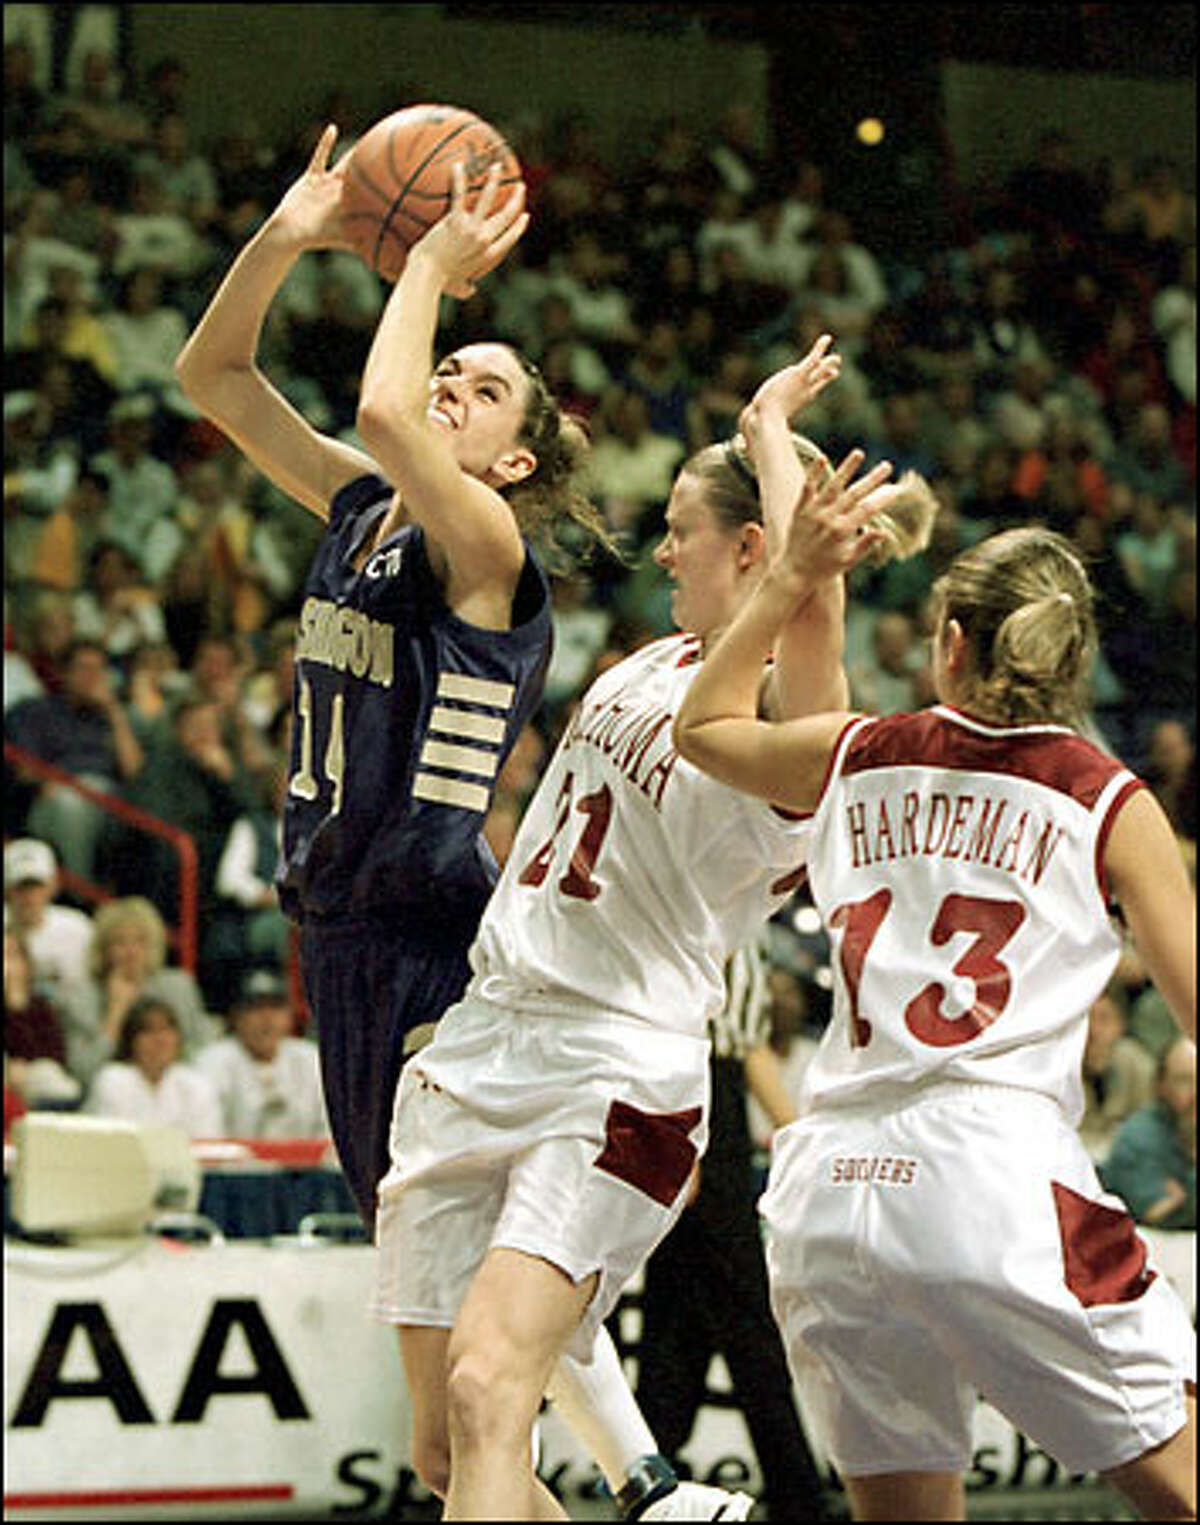 Washington's Megan Franza, left, works the ball to the basket against Oklahoma's Stacey Dales, center, and Sunny Hardeman during the second half. Franza finished with 17 points.